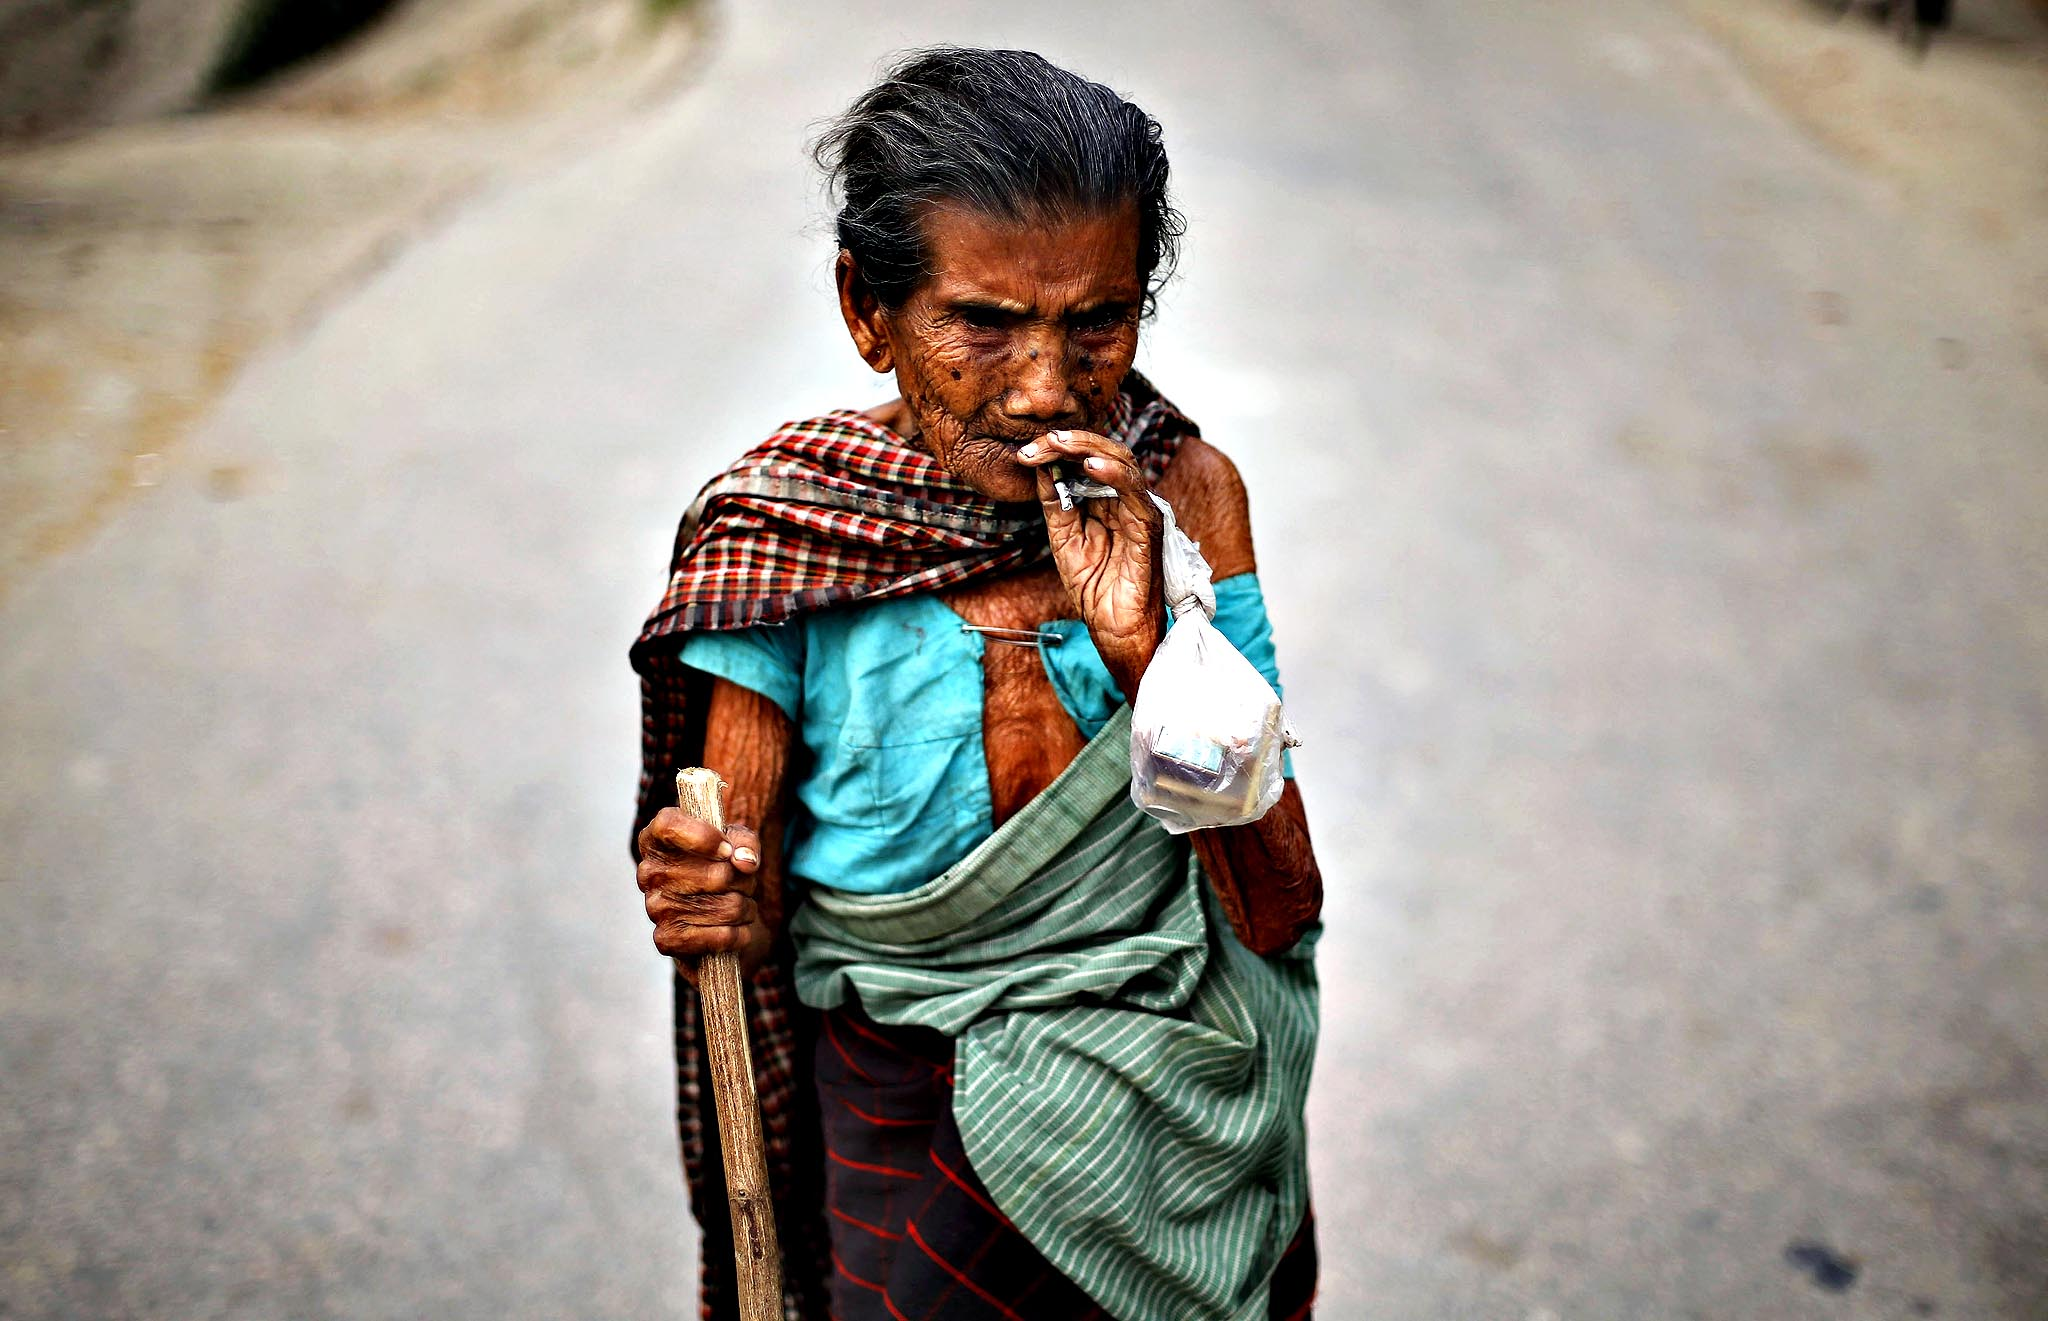 A woman smokes bidi, a local cigarette hand-rolled with tobacco leaf, as she arrives to cast her vote, outside a polling station in Majuli, a large river island in the Brahmaputra river, Jorhat district, in the northeastern Indian state of Assam April 7, 2014. The first electors cast their votes in the world's biggest election on Monday with Hindu nationalist opposition candidate Narendra Modi seen holding a strong lead on promises of economic revival and jobs but likely to fall short of a majority.